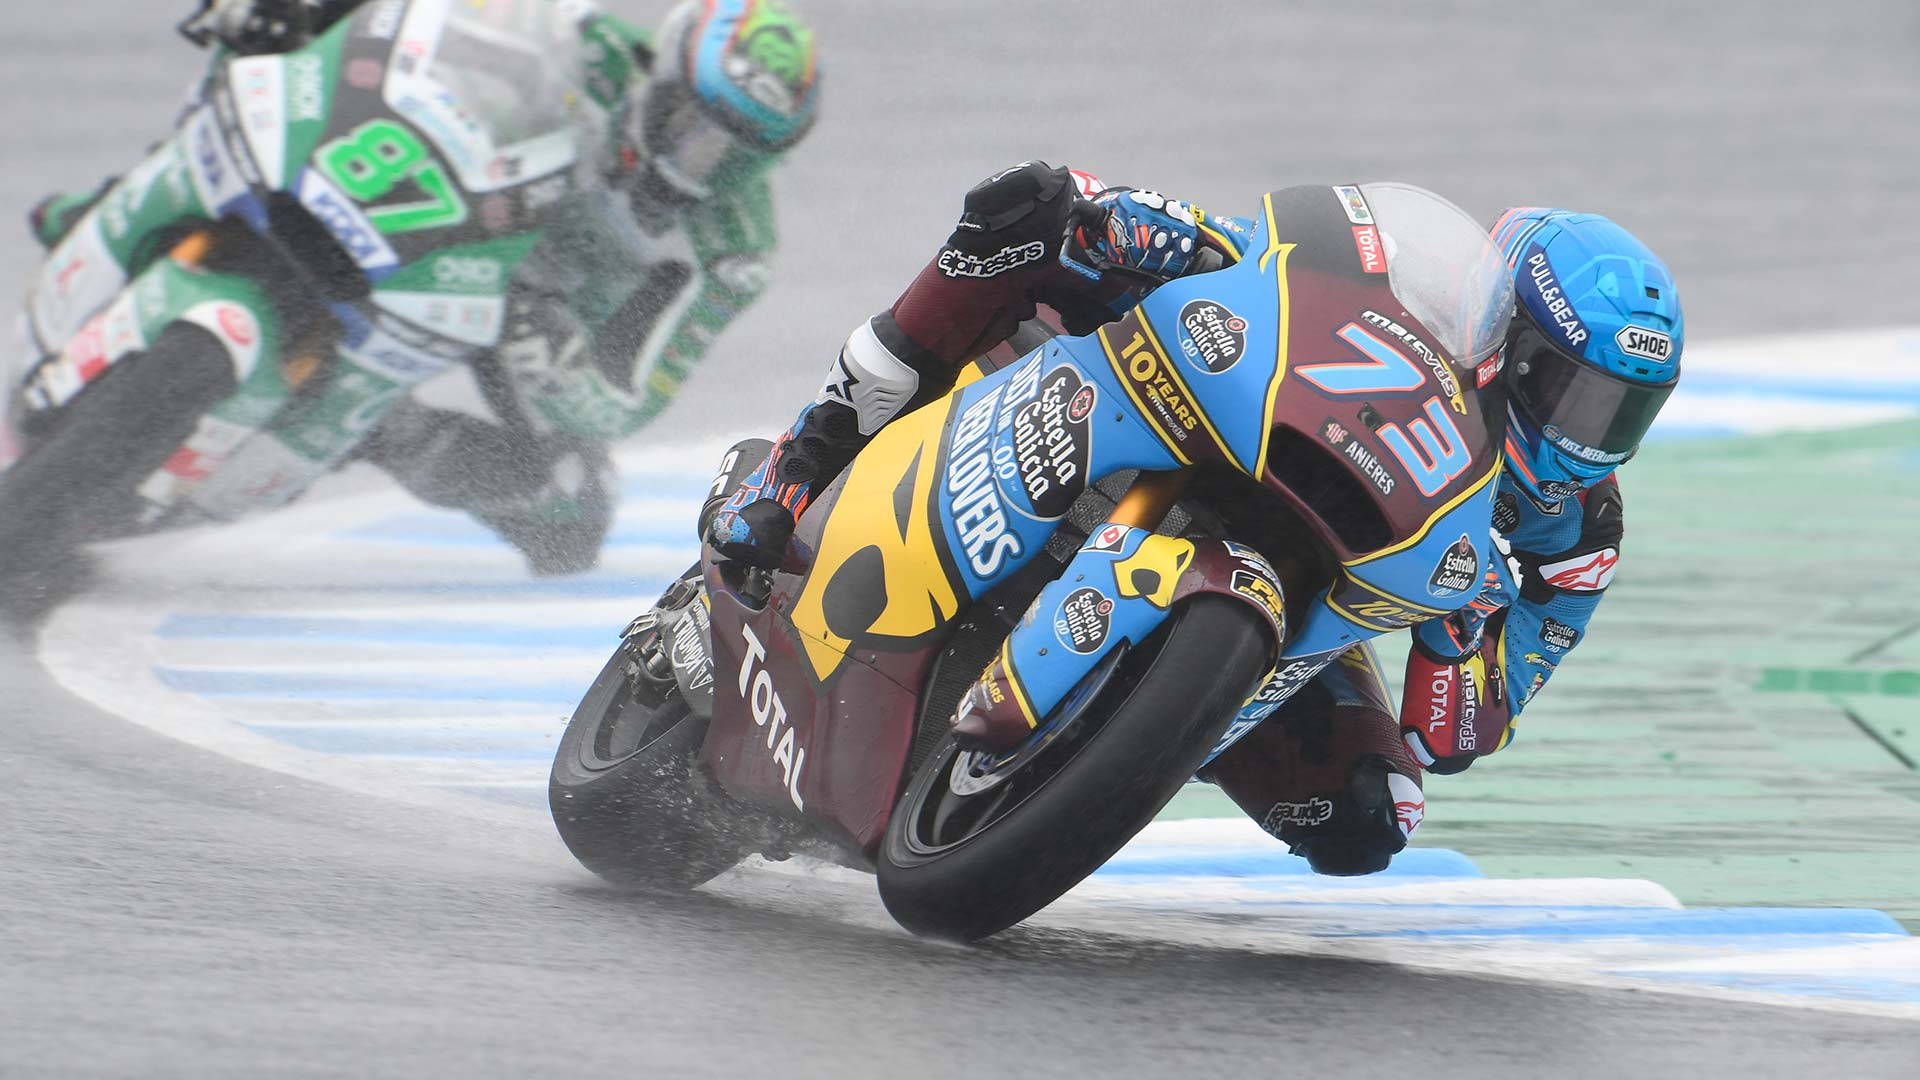 Alex Marquez in action on Twin Ring Motegi